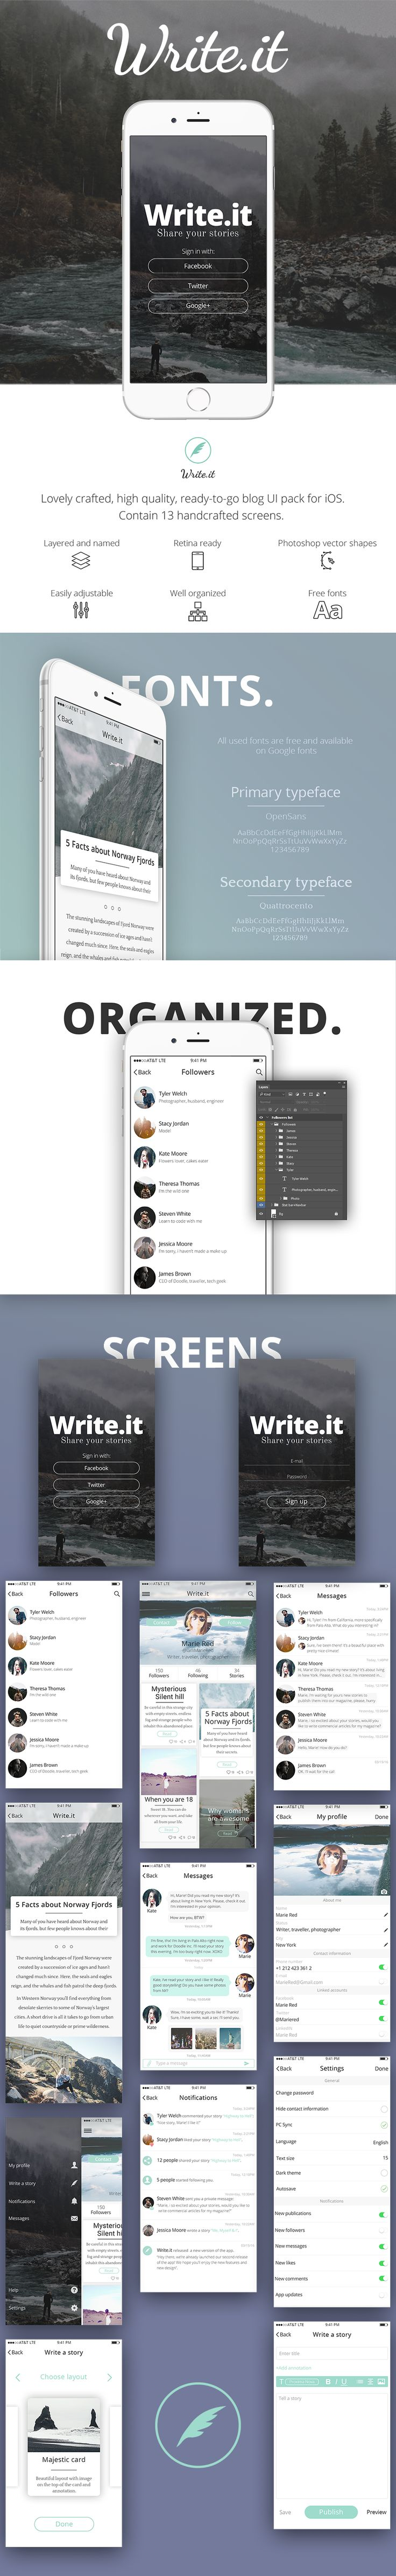 Write.it – free blog app Ui kit